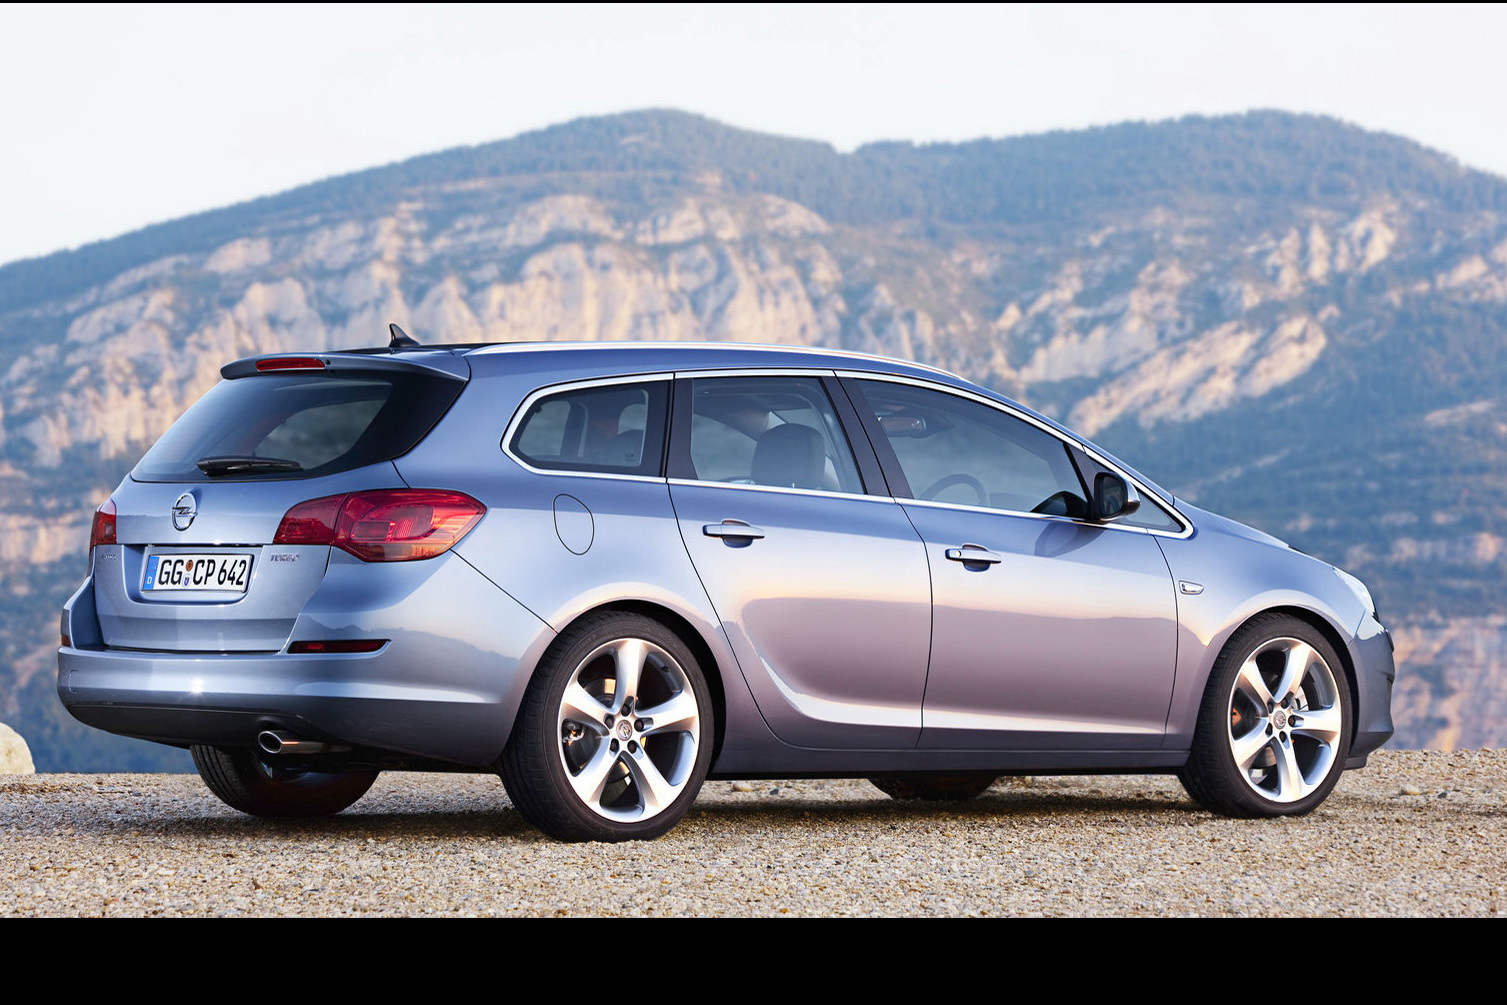 new opel astra sports tourer unveiled should buick bring it to the states carscoops. Black Bedroom Furniture Sets. Home Design Ideas